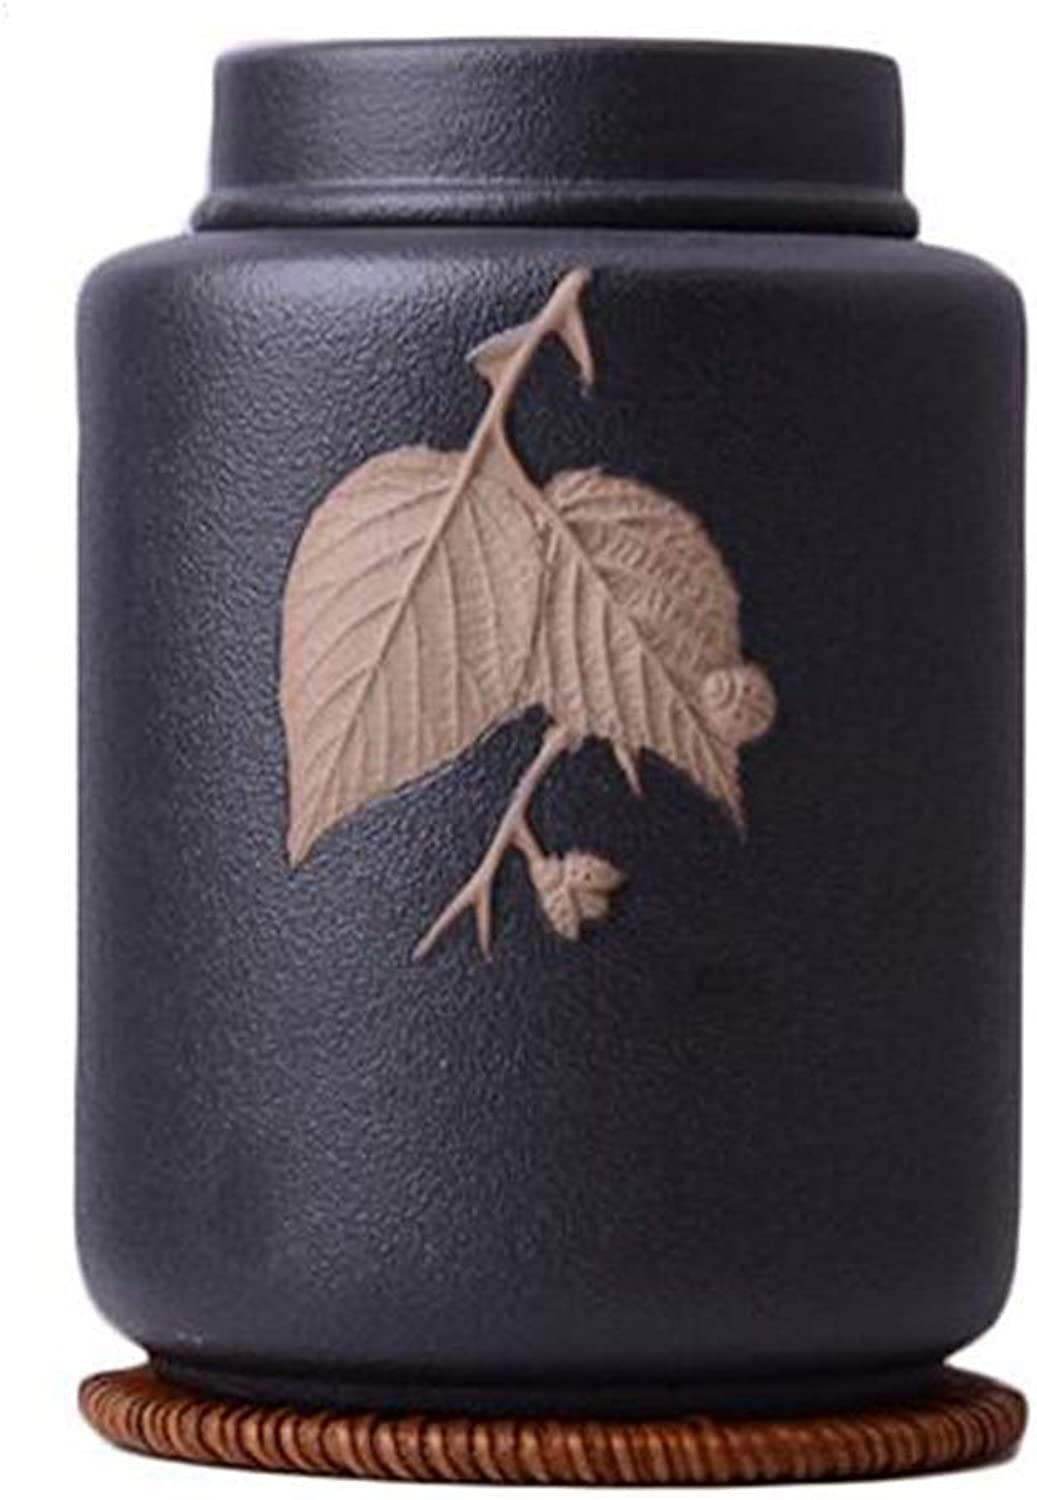 HJM Pet Weng  Sealed MoistureProof Handmade Pet Coffin Frosted Embossed Leaf Ceramic Bottle Commemorating The Death of Dogs, Cats and Other Small Animals Suitable for Storing All Pets' Ashes